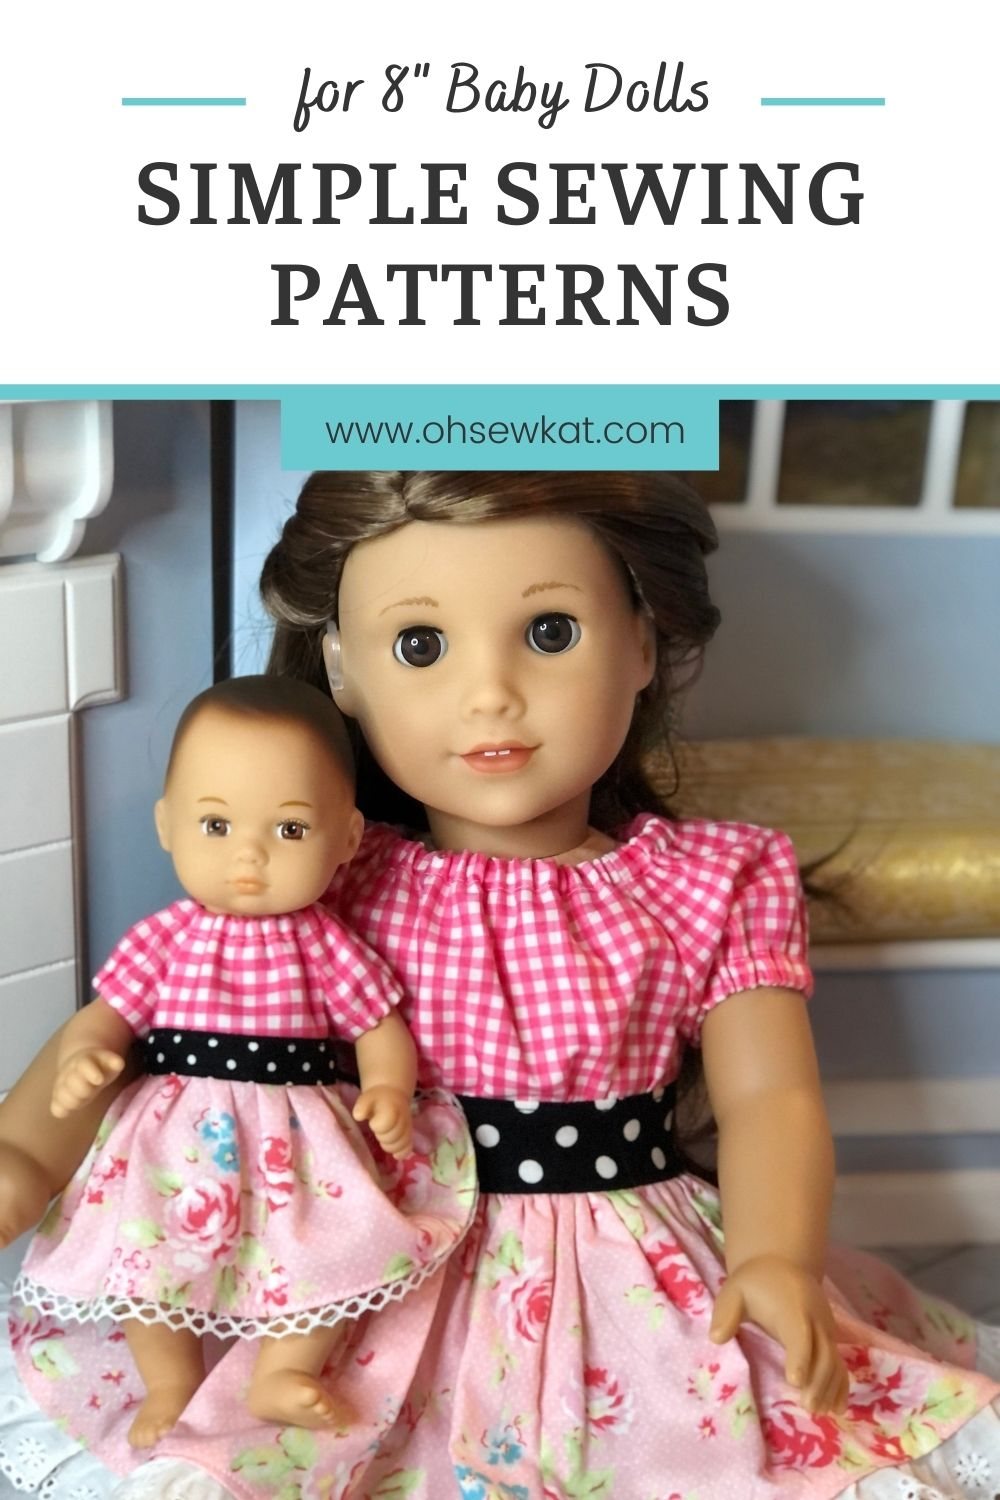 Make an easy doll dress for your 8 inch Caring for Baby doll from American Girl. This PDF sewing pattern is tiny but has simple instructions and will walk you through the tutorial to create your own doll clothes for the tiny baby doll.